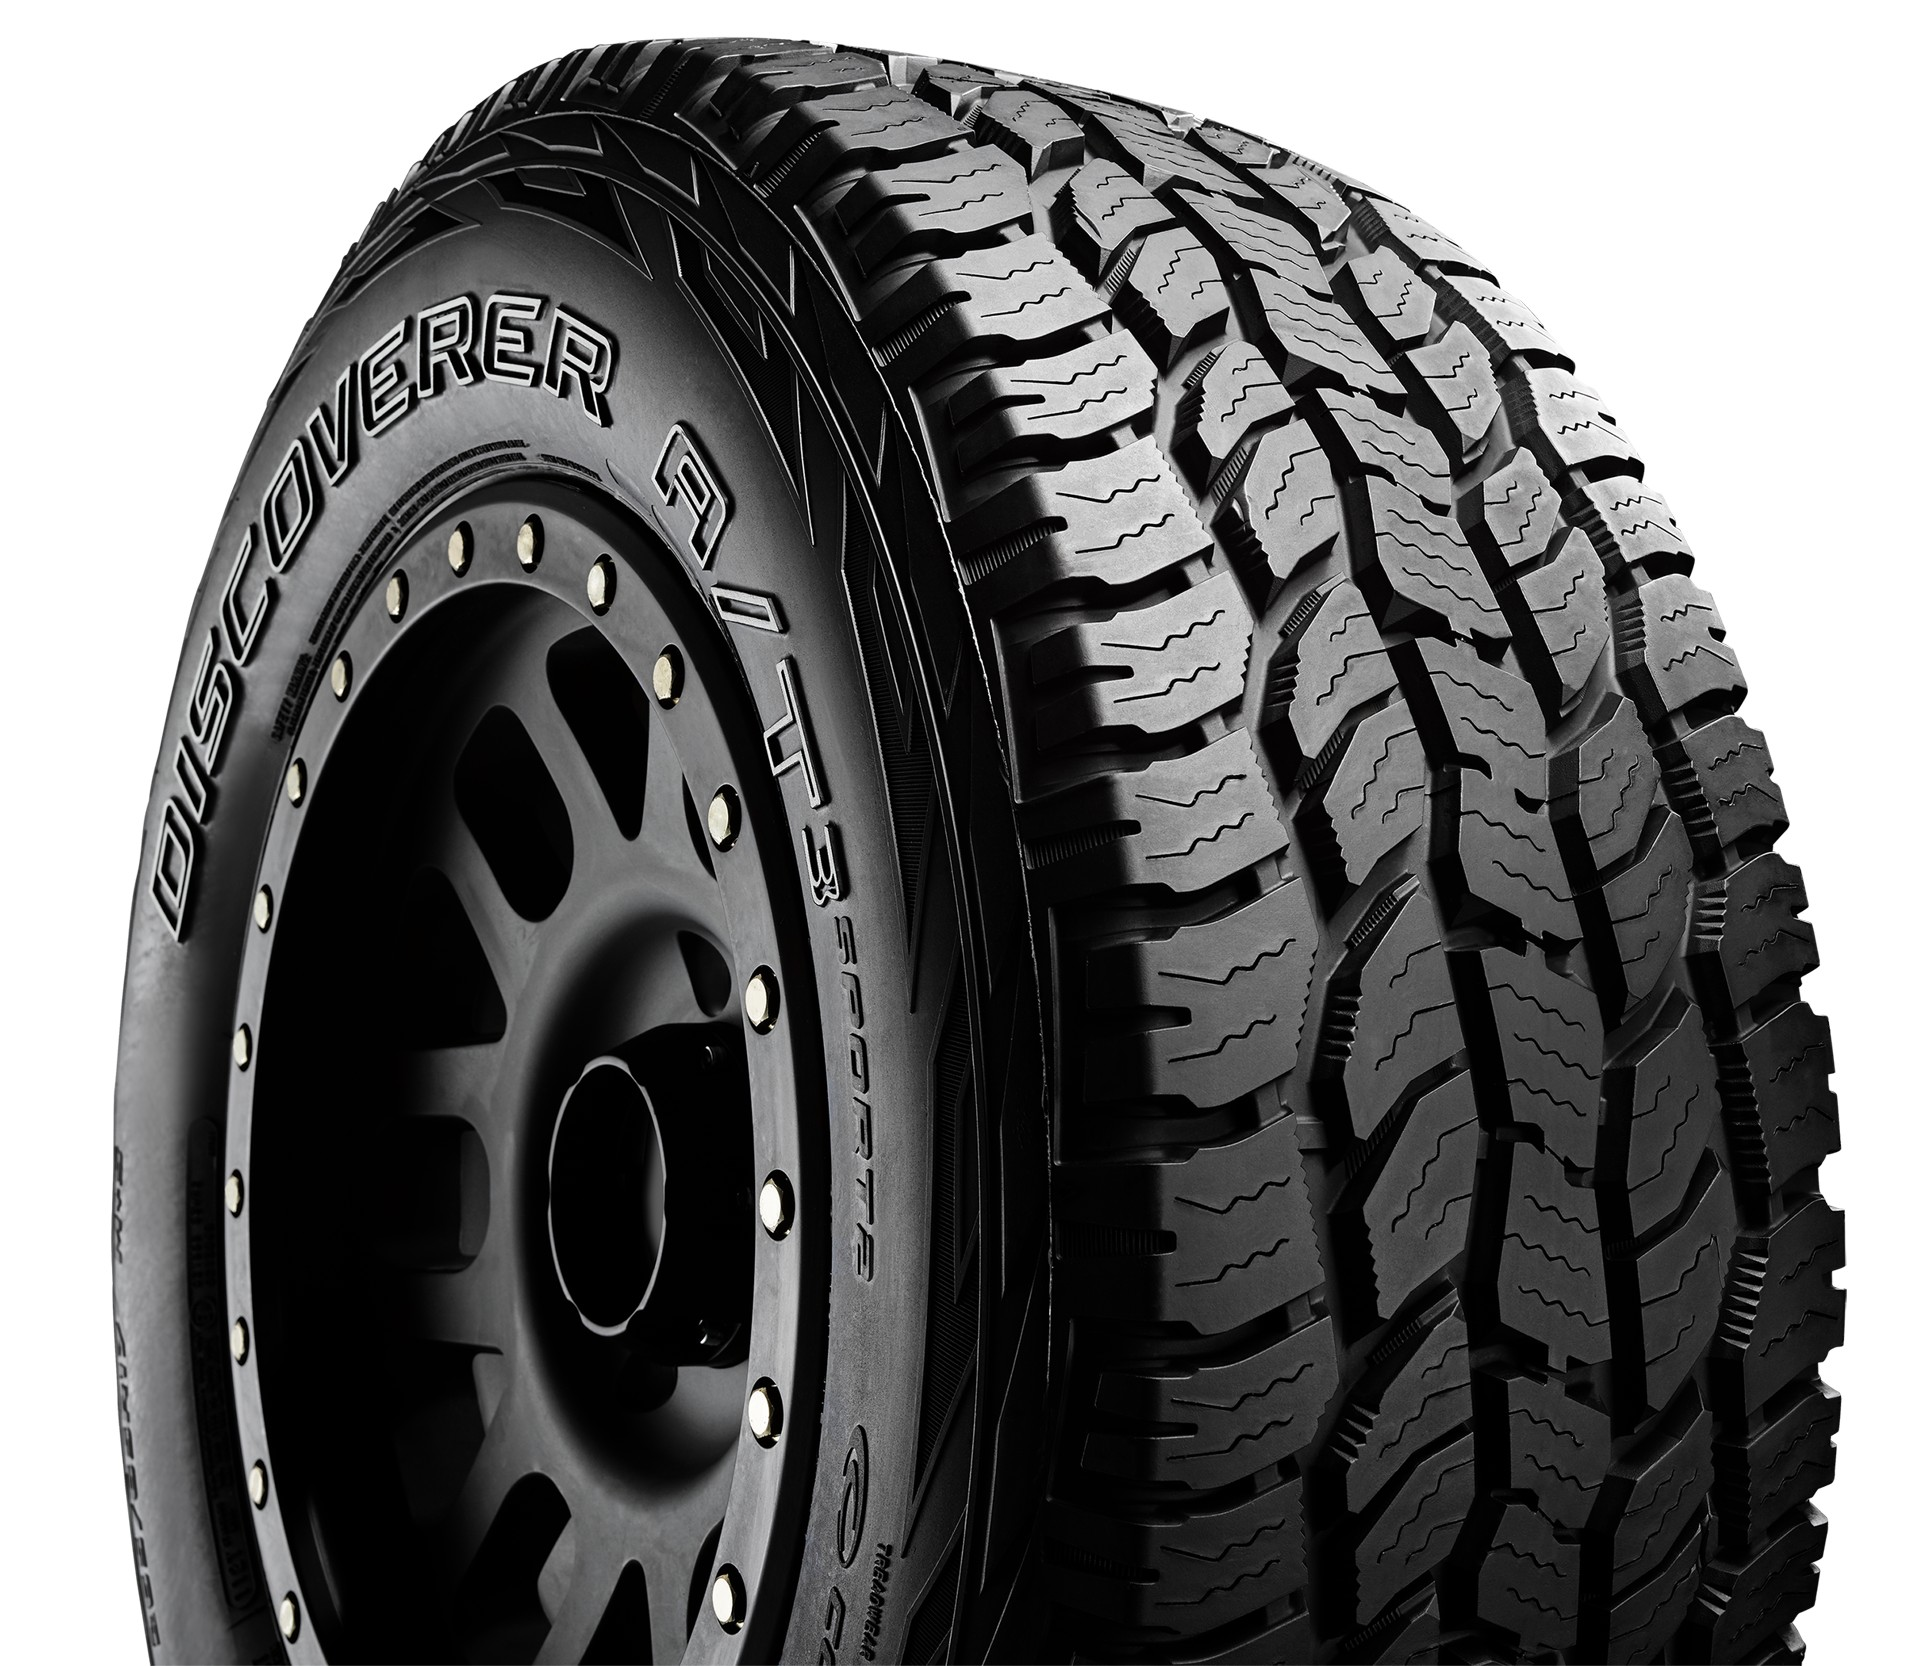 Cooper Tyres Cooper Tyres 205/70 R15 96T DISCOVERER AT3 SPORT 2 XL pneumatici nuovi Estivo